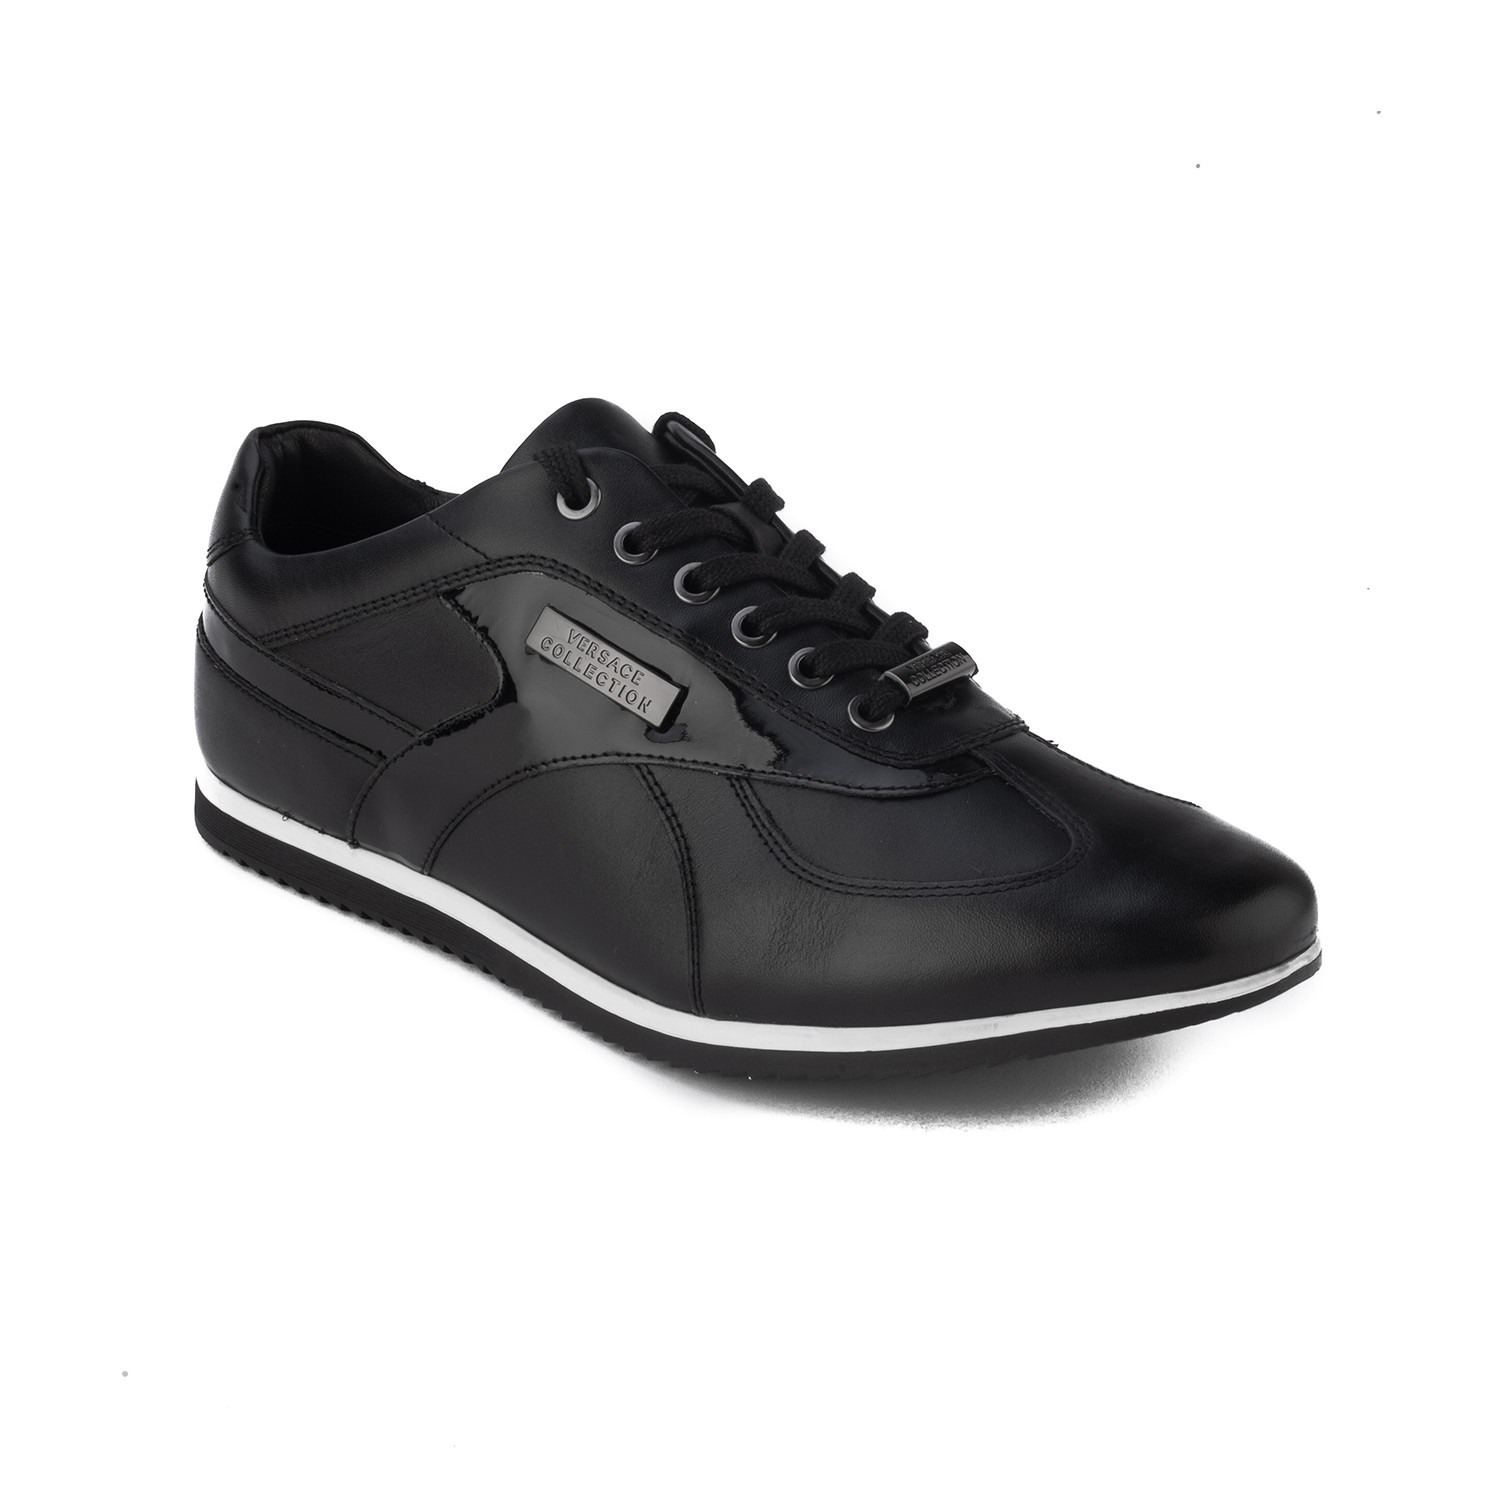 9fdb2a2833a Leather Low Top Sneaker    Black (US  8) - Versace Collection ...